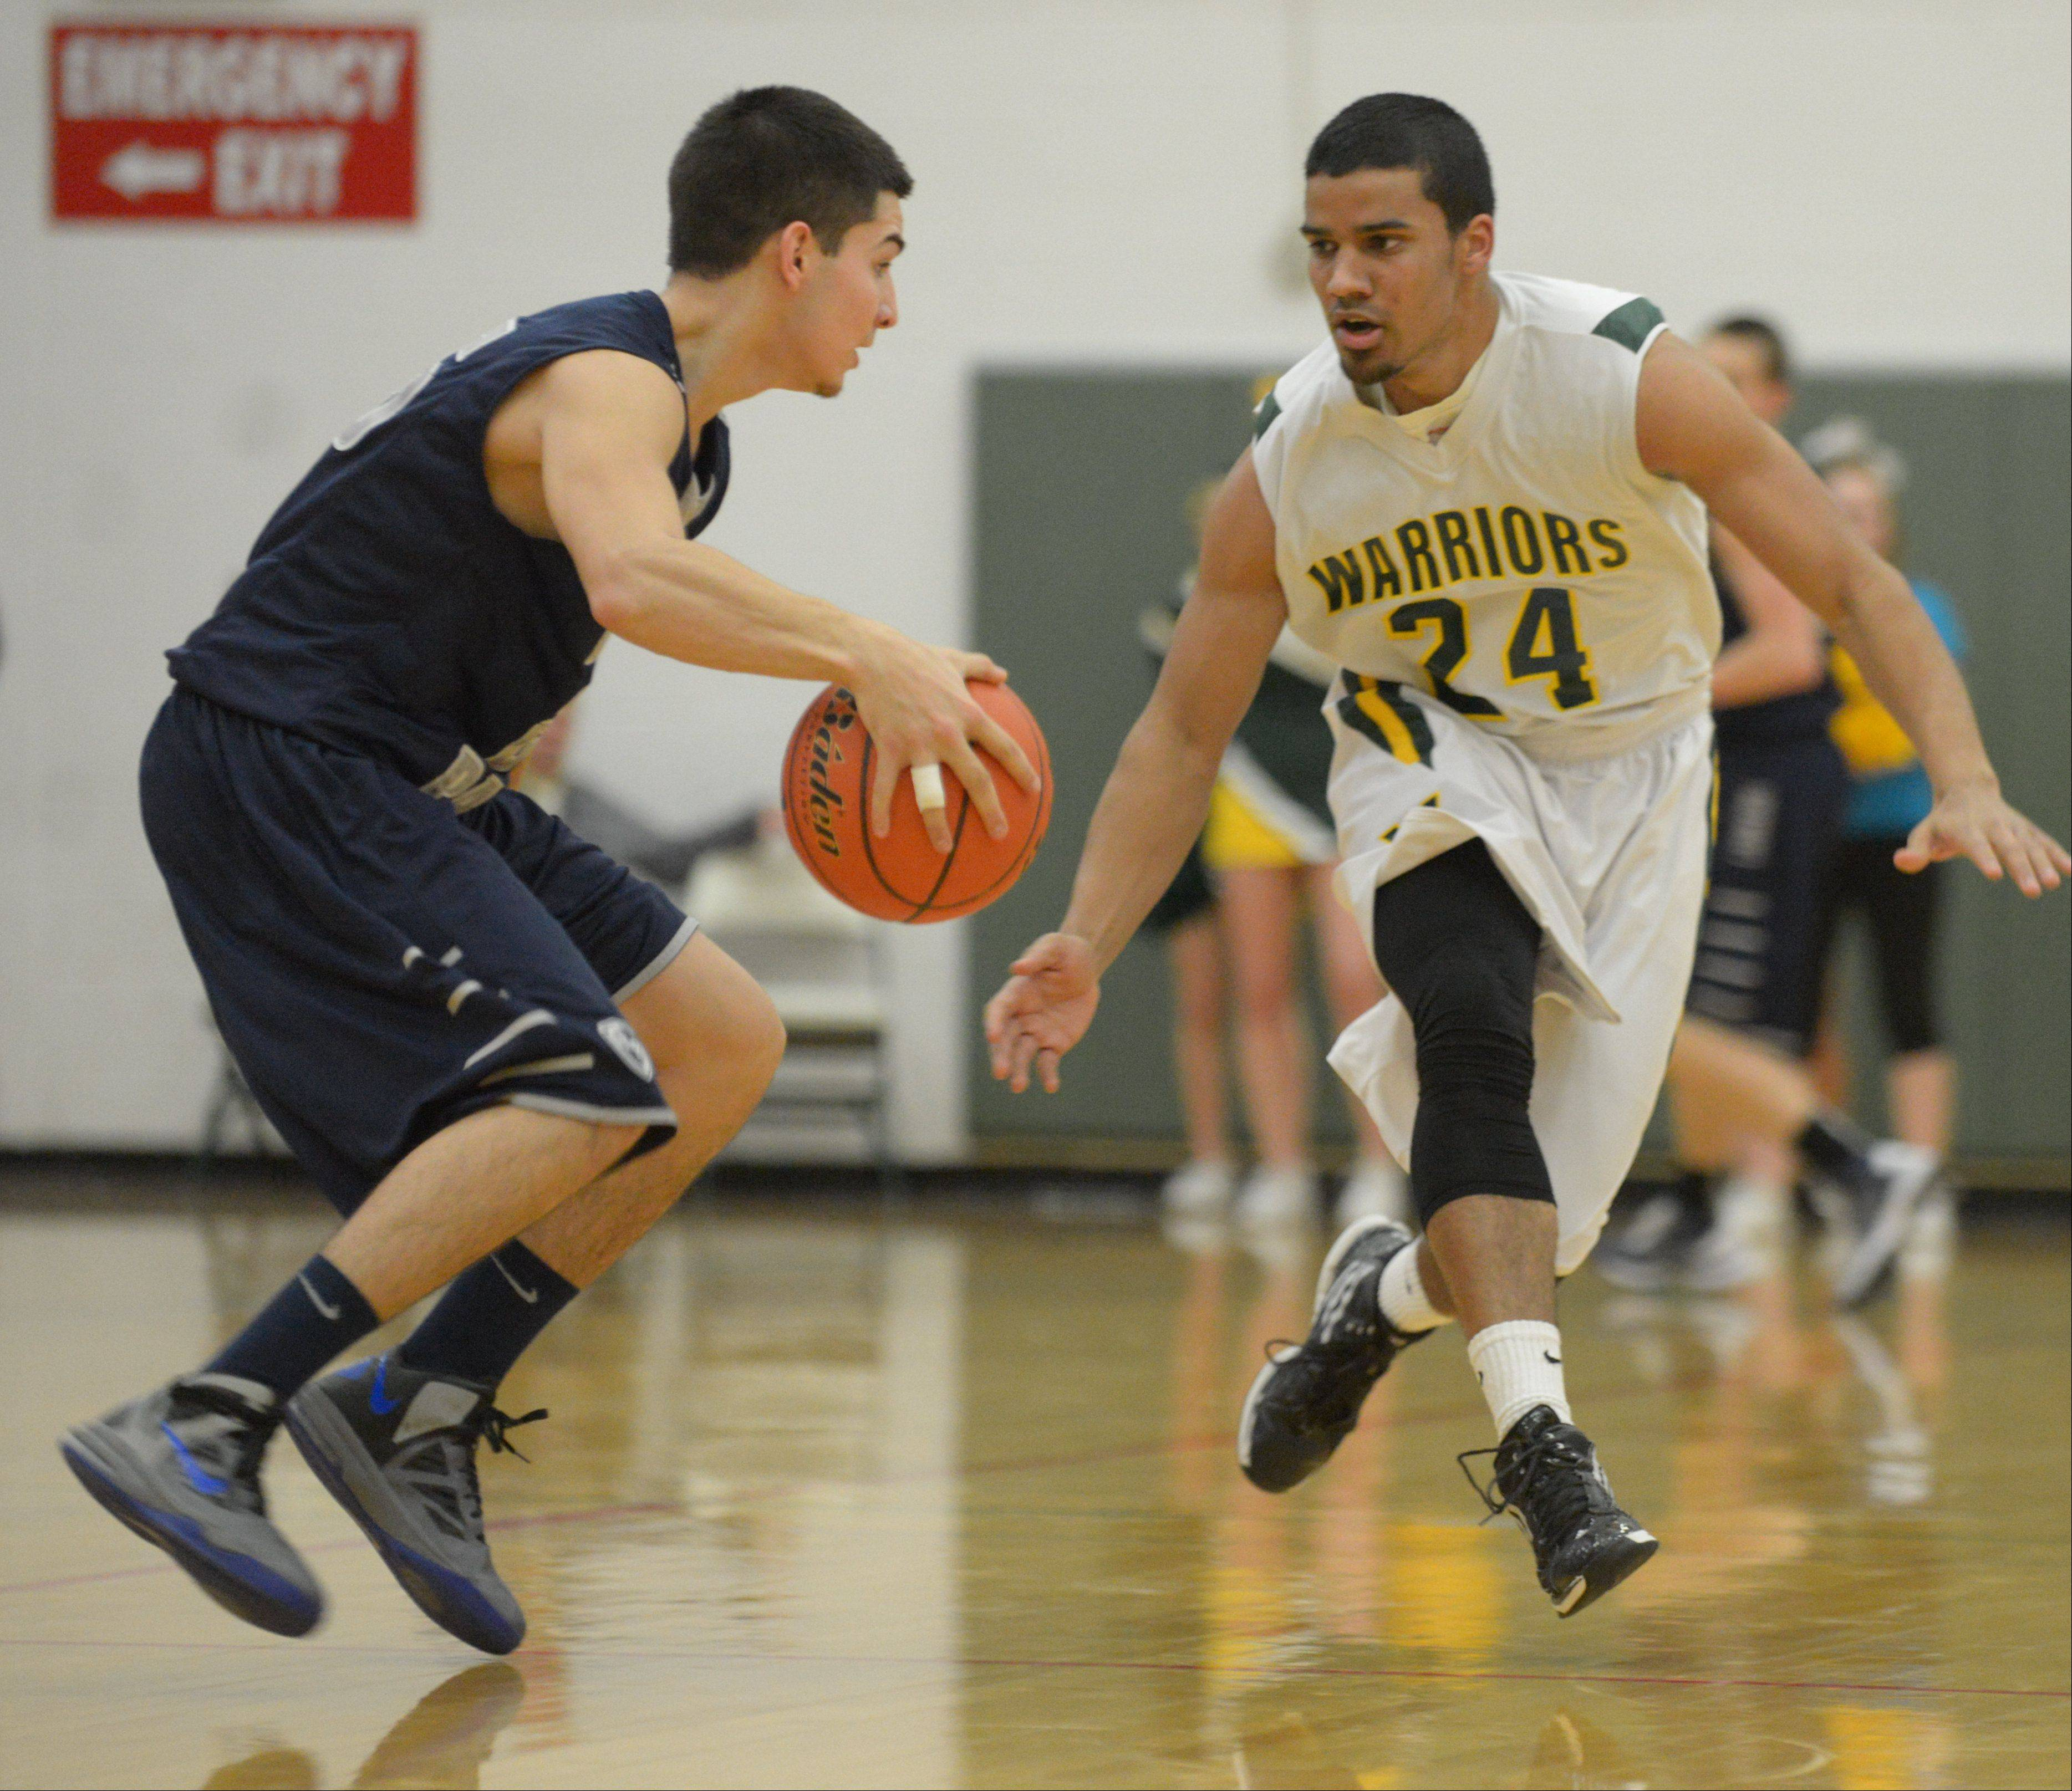 Images: Lake Park vs. Waubonsie Valley, boys basketball